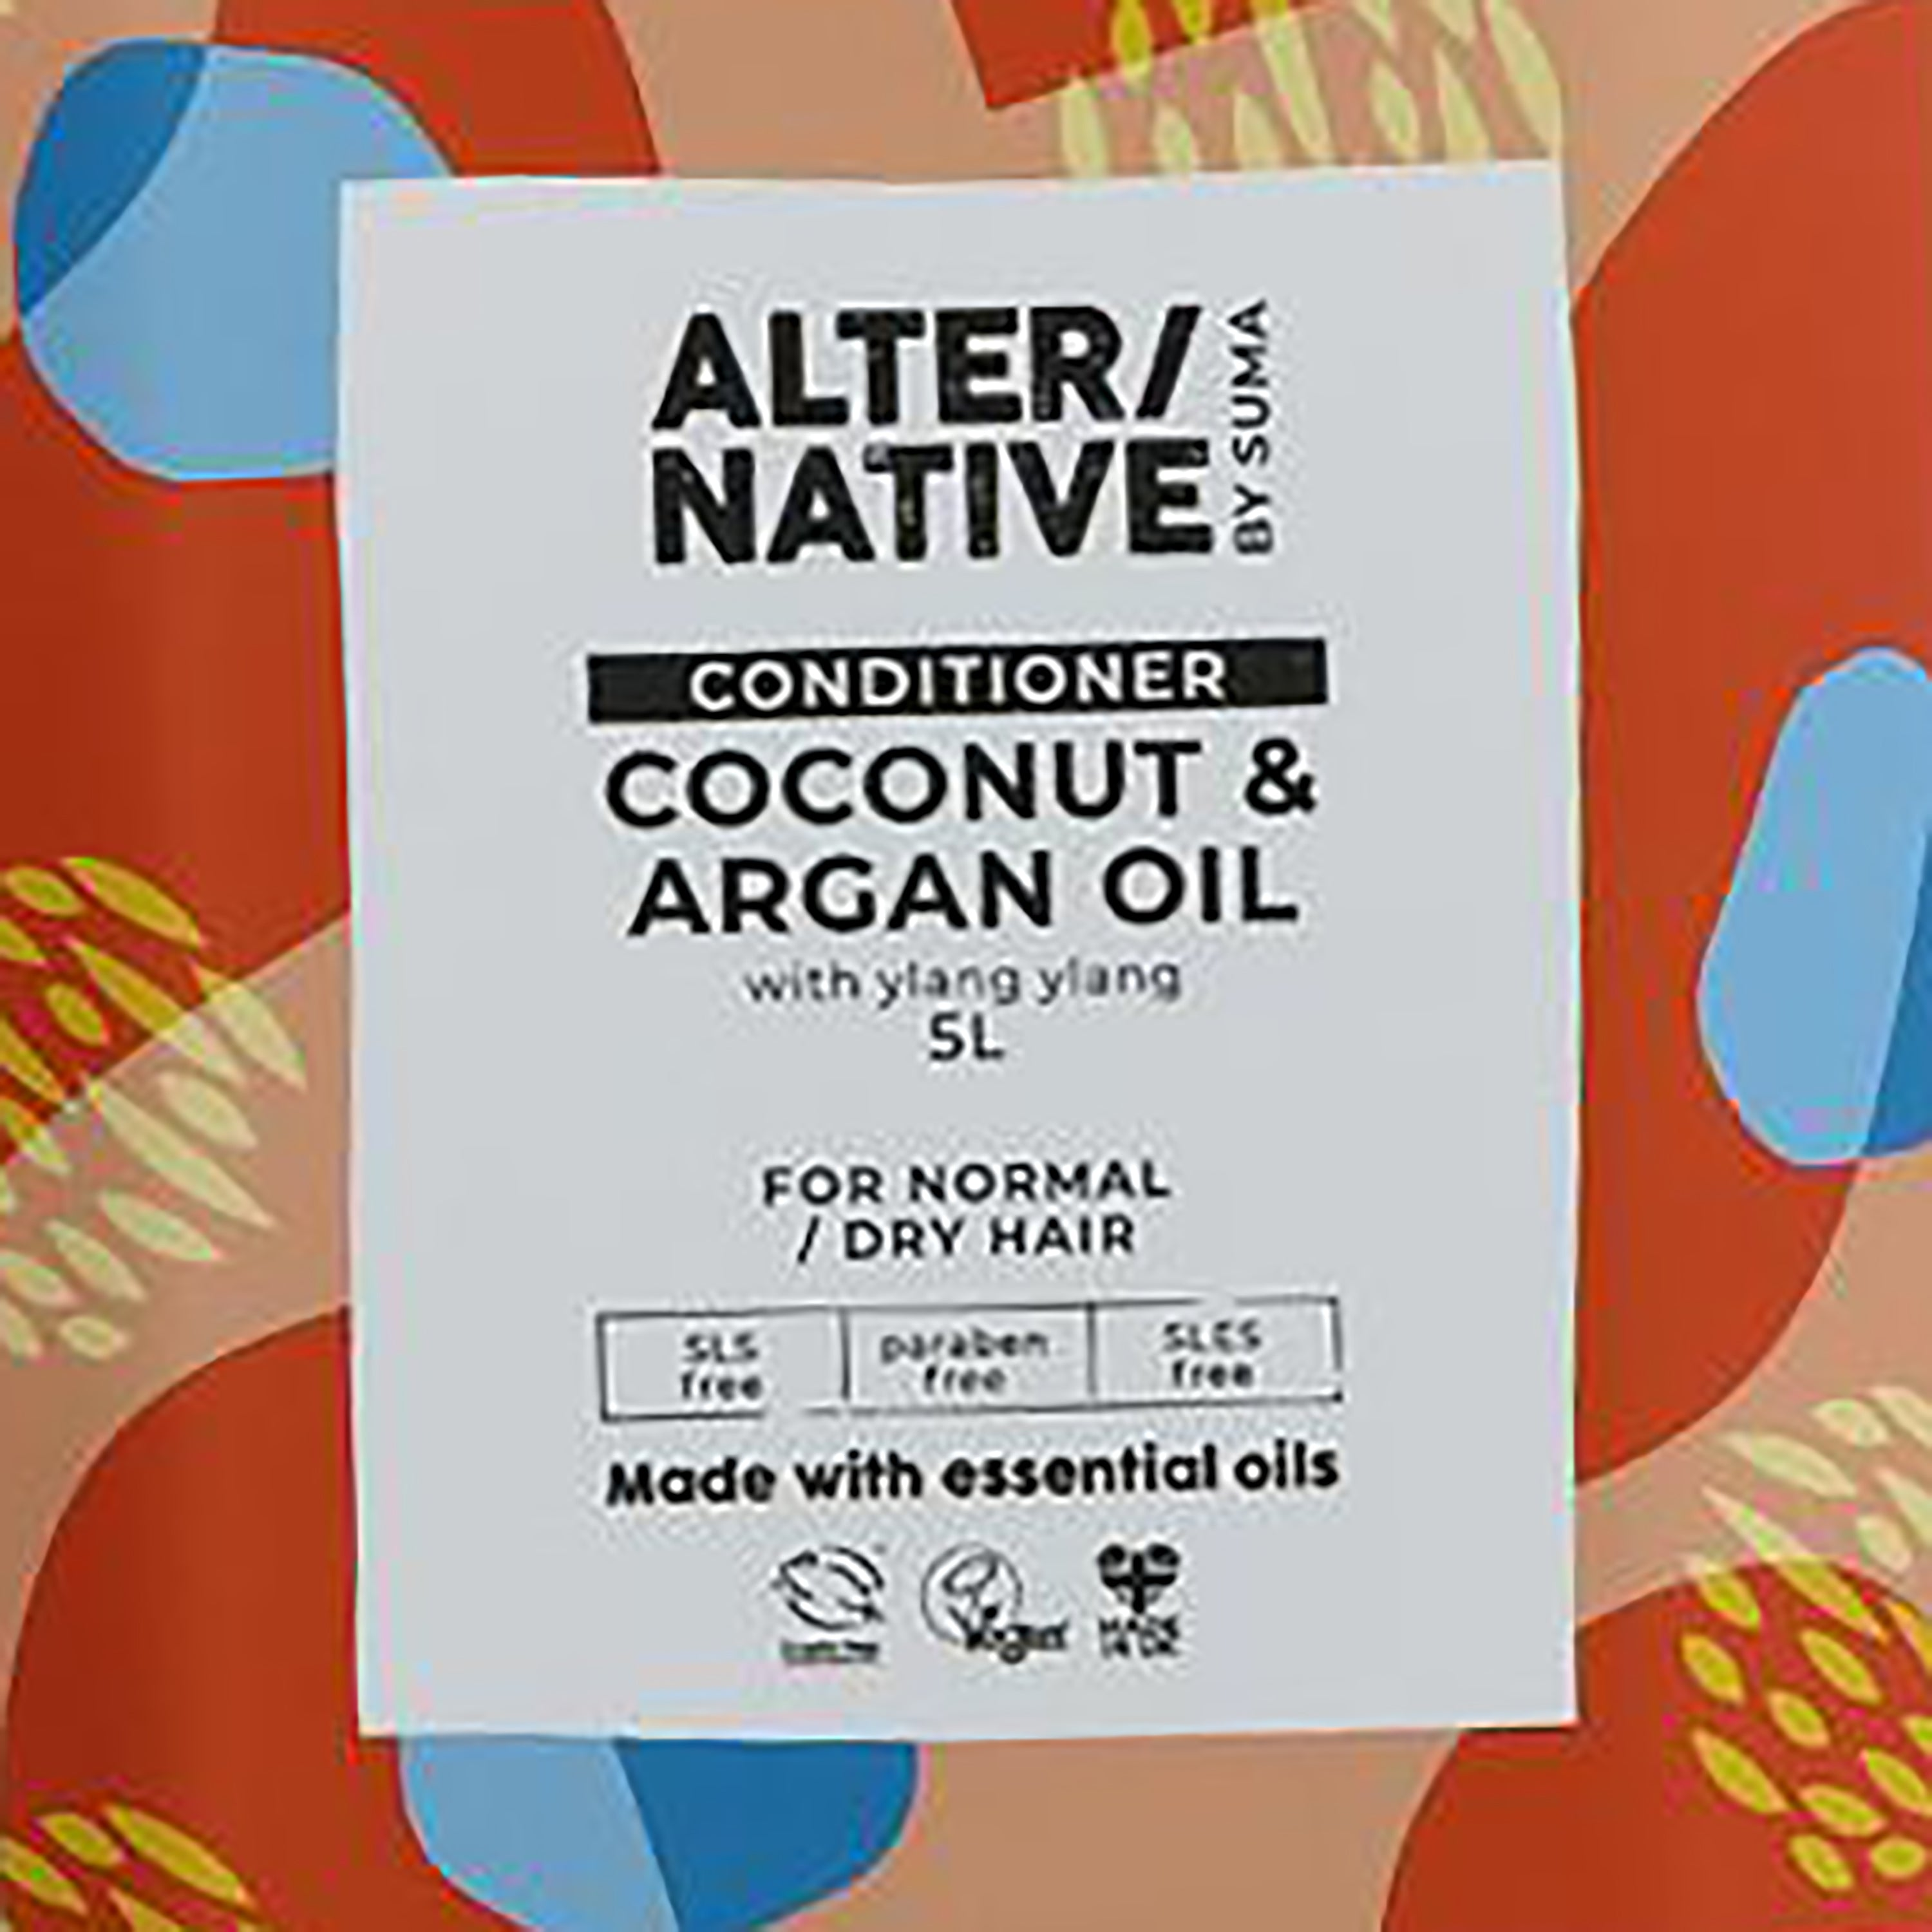 AlterNative Coconut And Argan Oil Conditioner (In Store Refill)